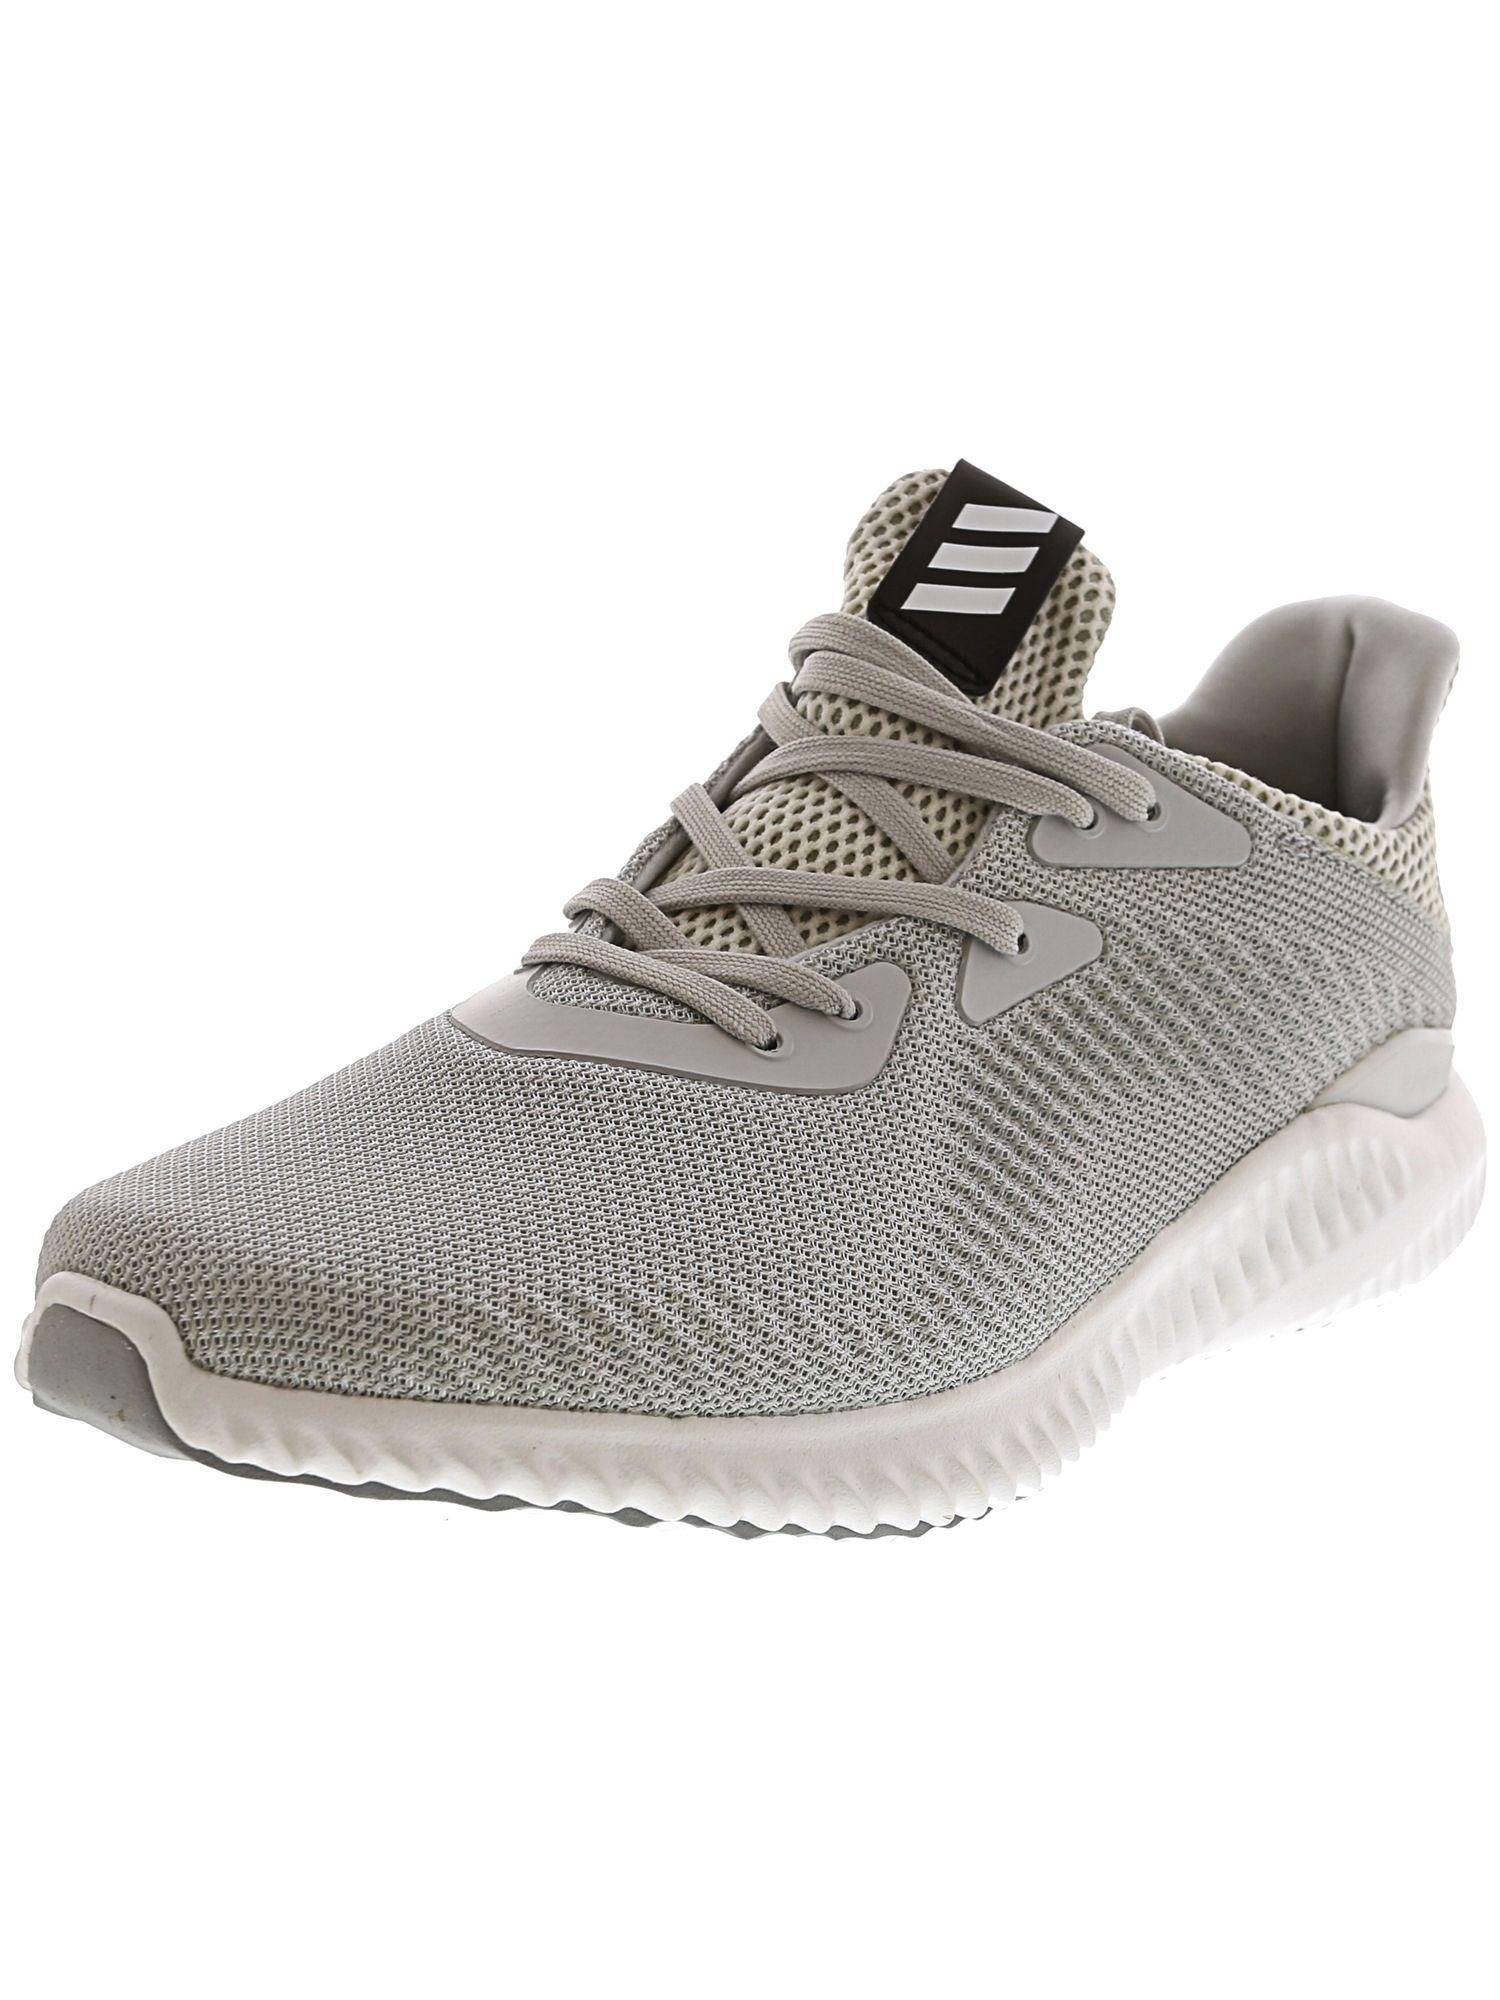 6aad4152a8e3e Lyst - Adidas Men s Alphabounce 1 Ankle-high Mesh Running Shoe in ...